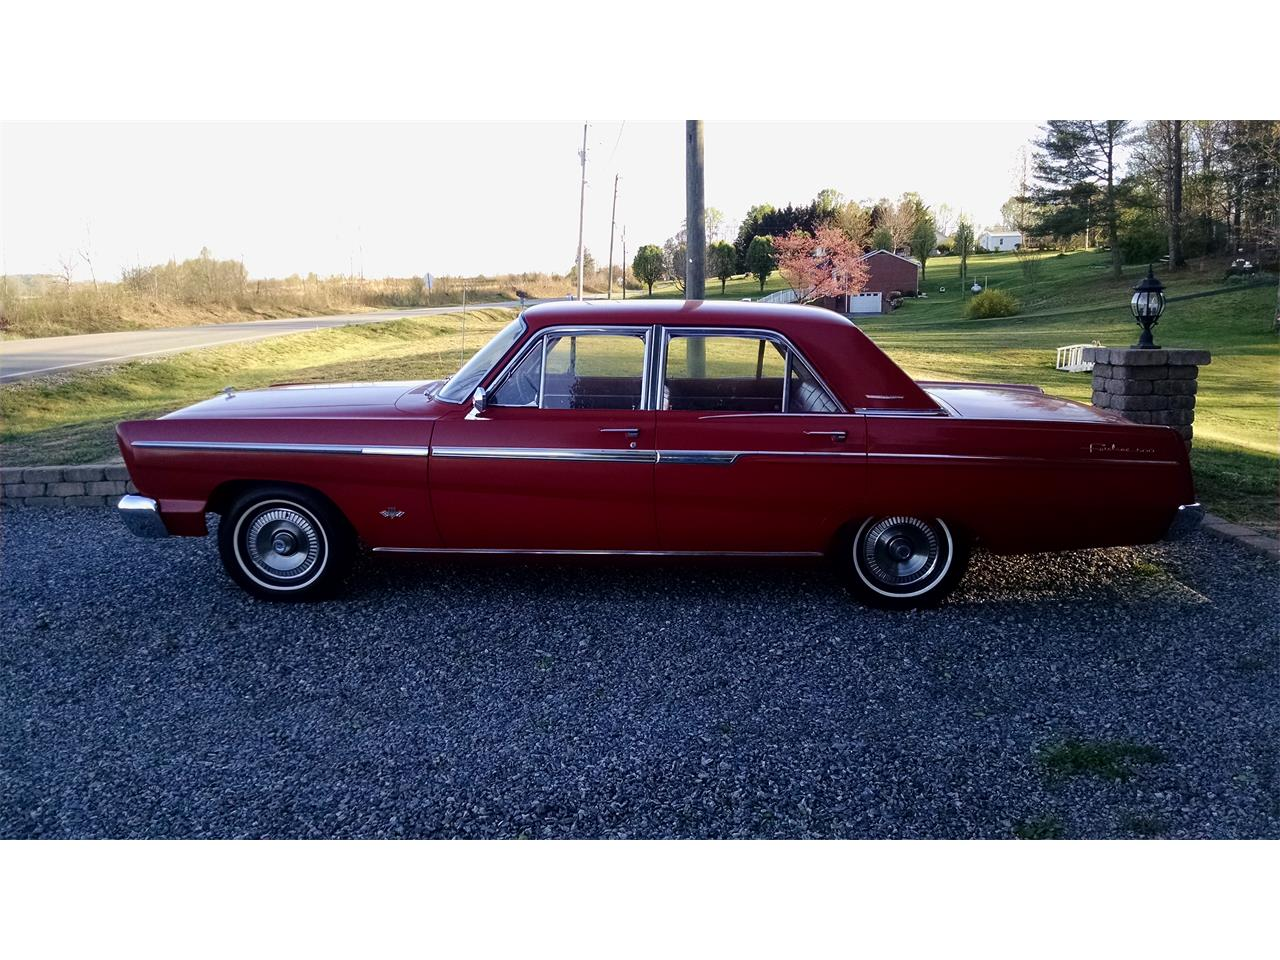 Large picture of 65 fairlane 500 hftg